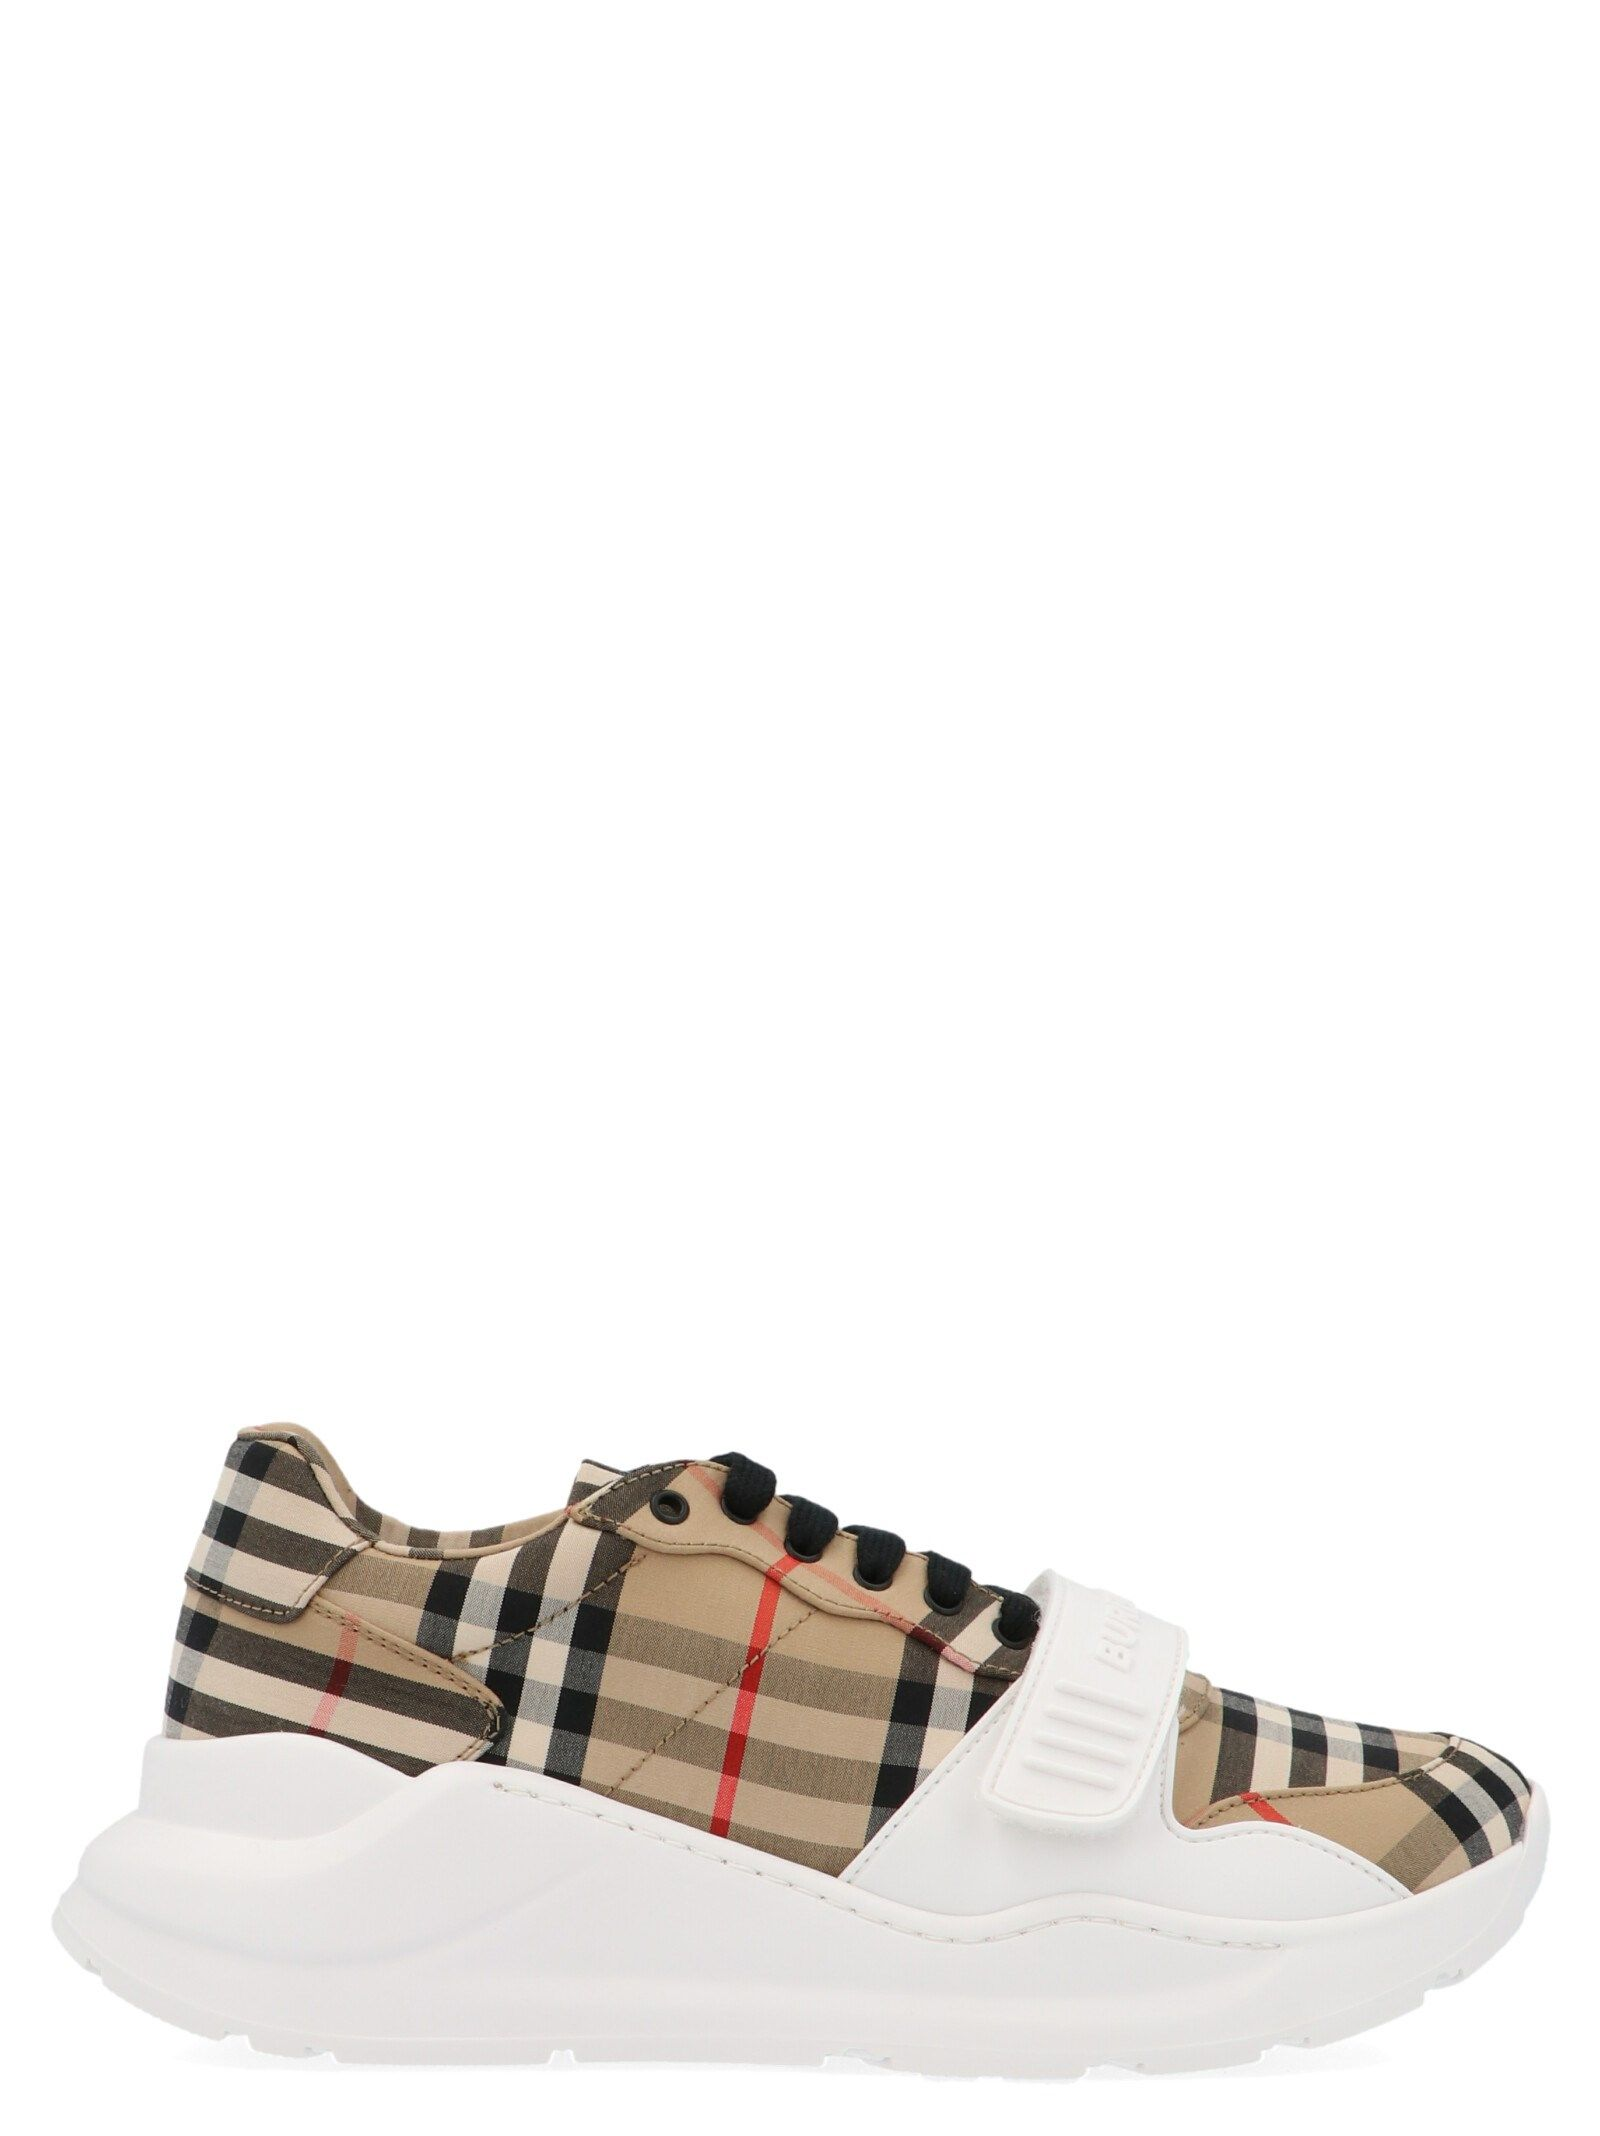 Burberry Canvases MULTICOLOR SNEAKERS